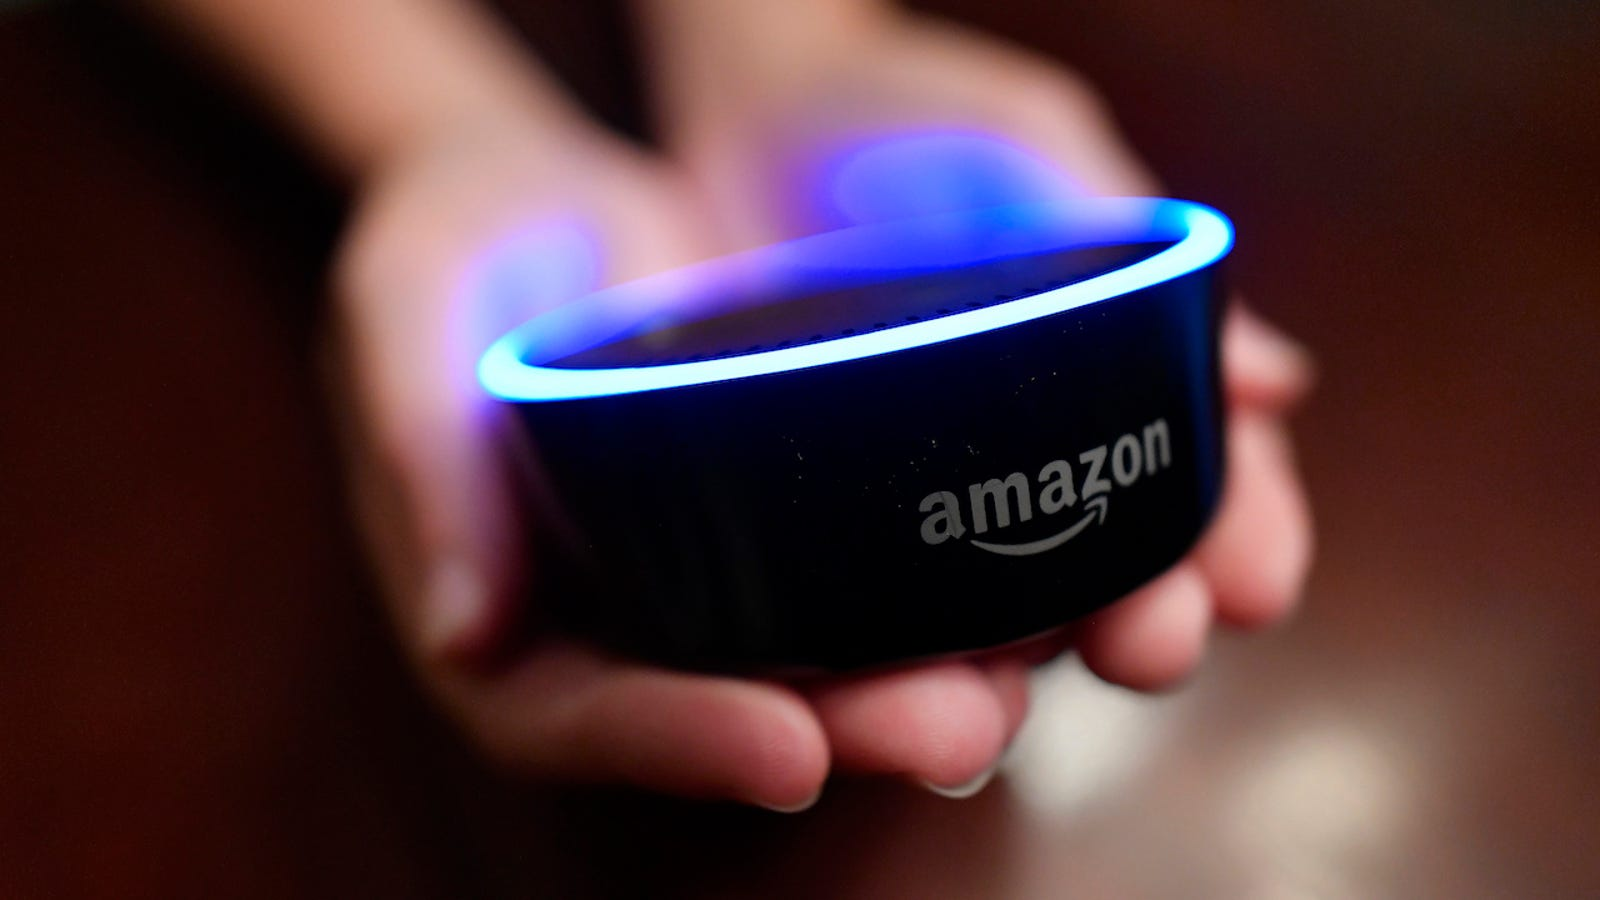 If You Care About Privacy, Throw Your Amazon Alexa Devices Into the Sea